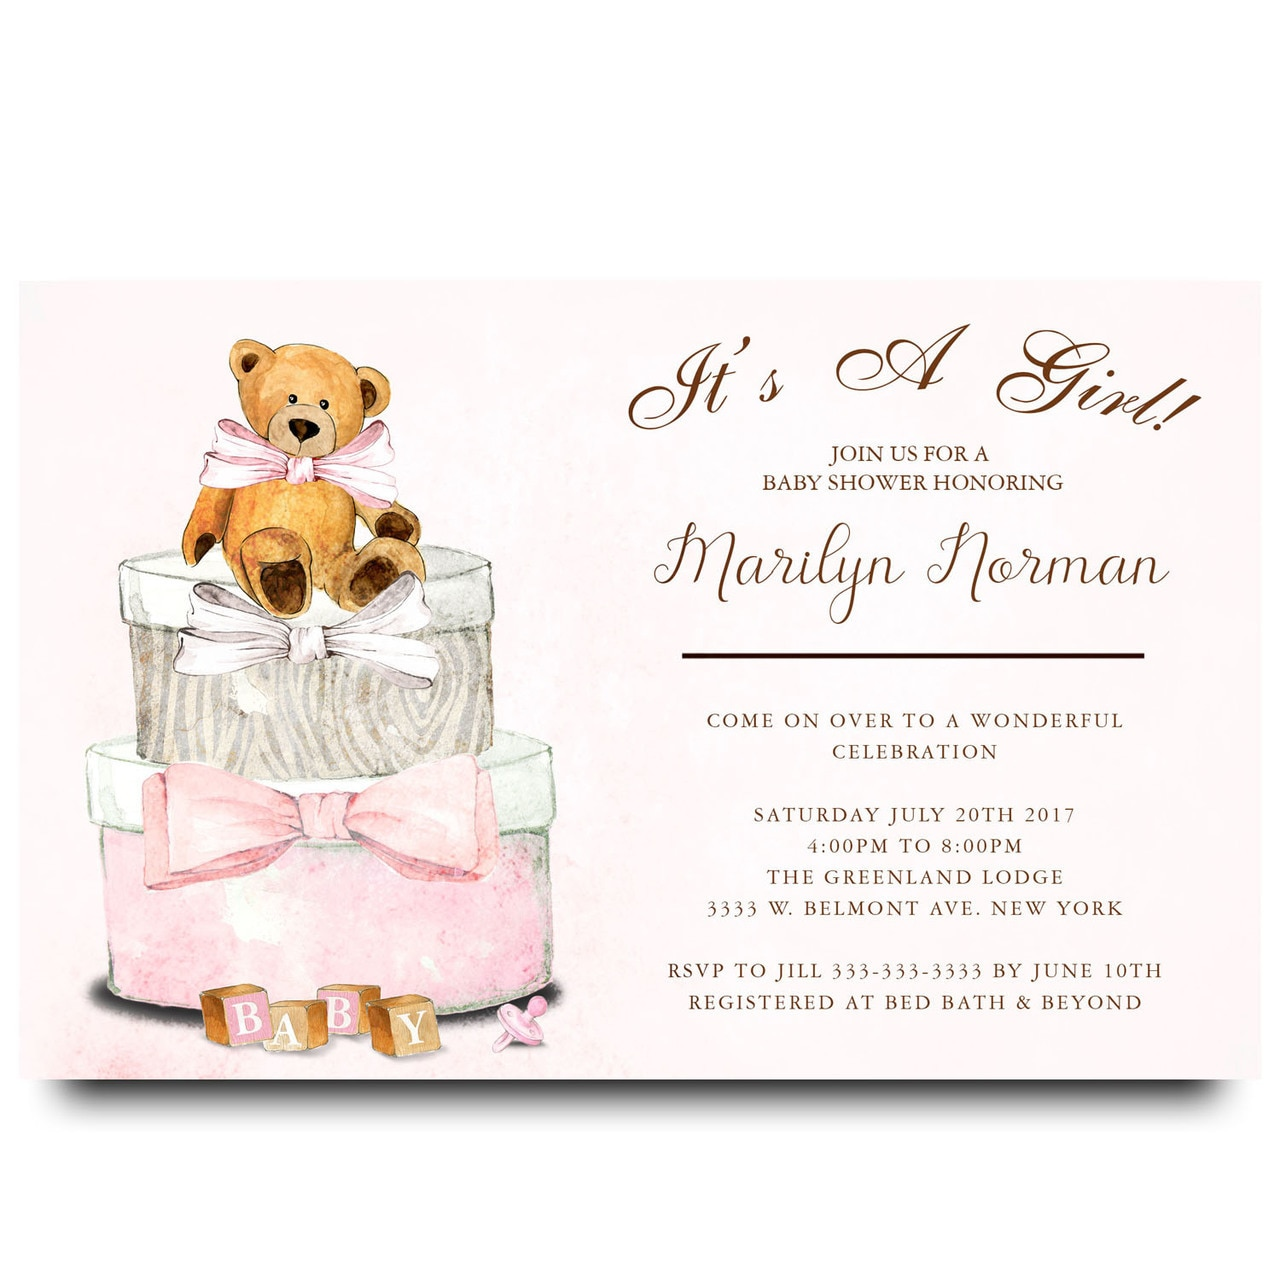 Full Size of Baby Shower:63+ Delightful Cheap Baby Shower Invitations Image Inspirations Cheap Baby Shower Invitations Adornos Para Baby Shower Girl Baby Shower Baby Shower Para Niño Baby Shower Video Teddy Bear Gift Boxs Pink Teddy Bear Watercolor Baby Shower